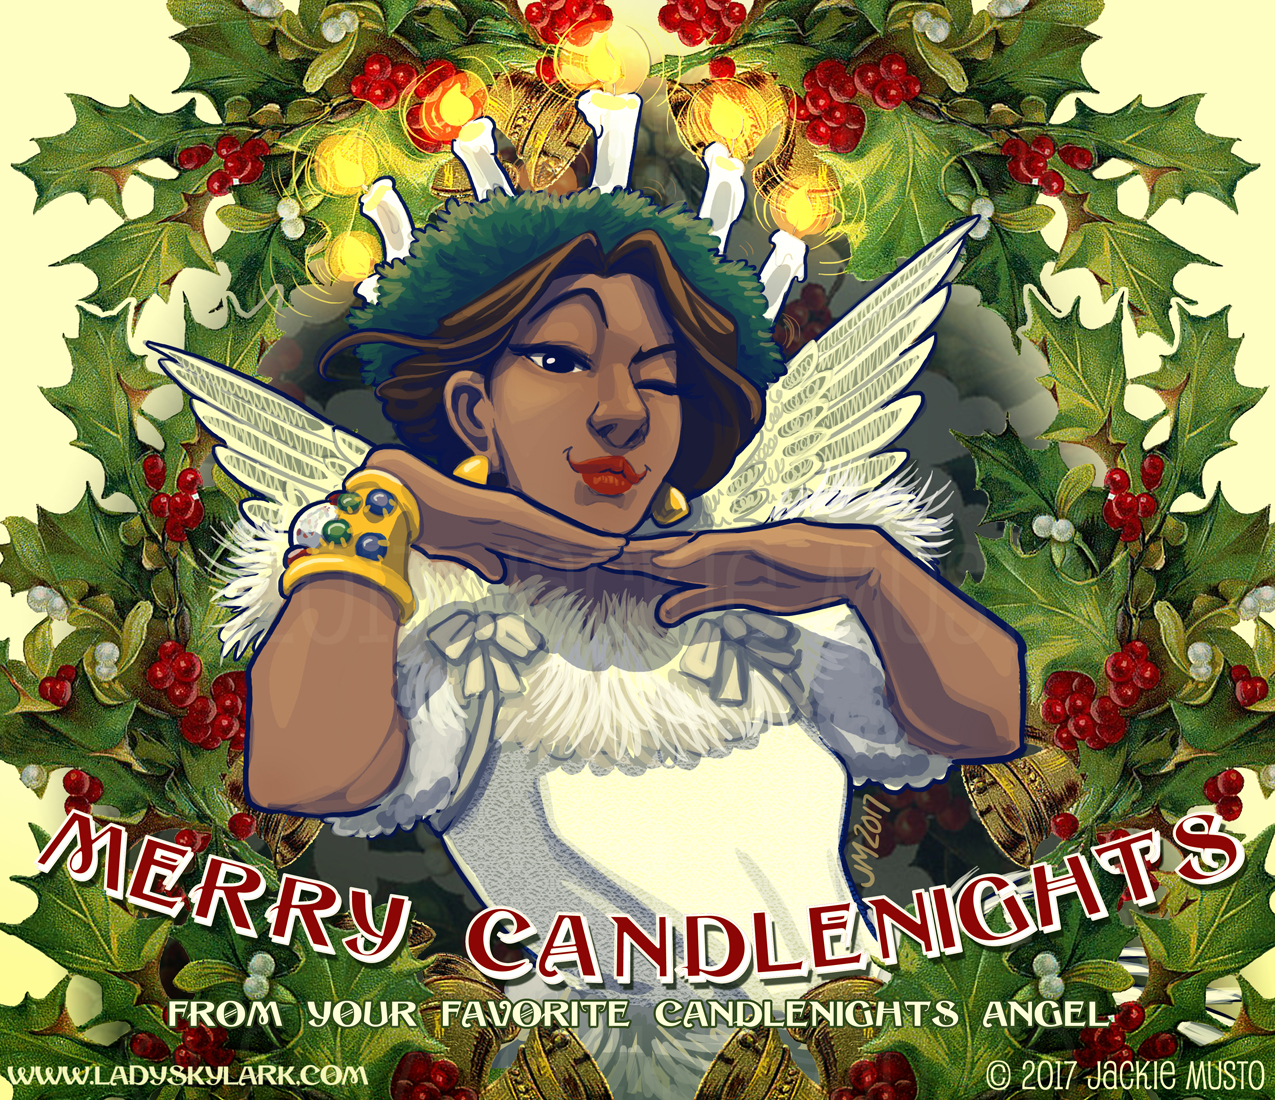 Merry Candlenights!